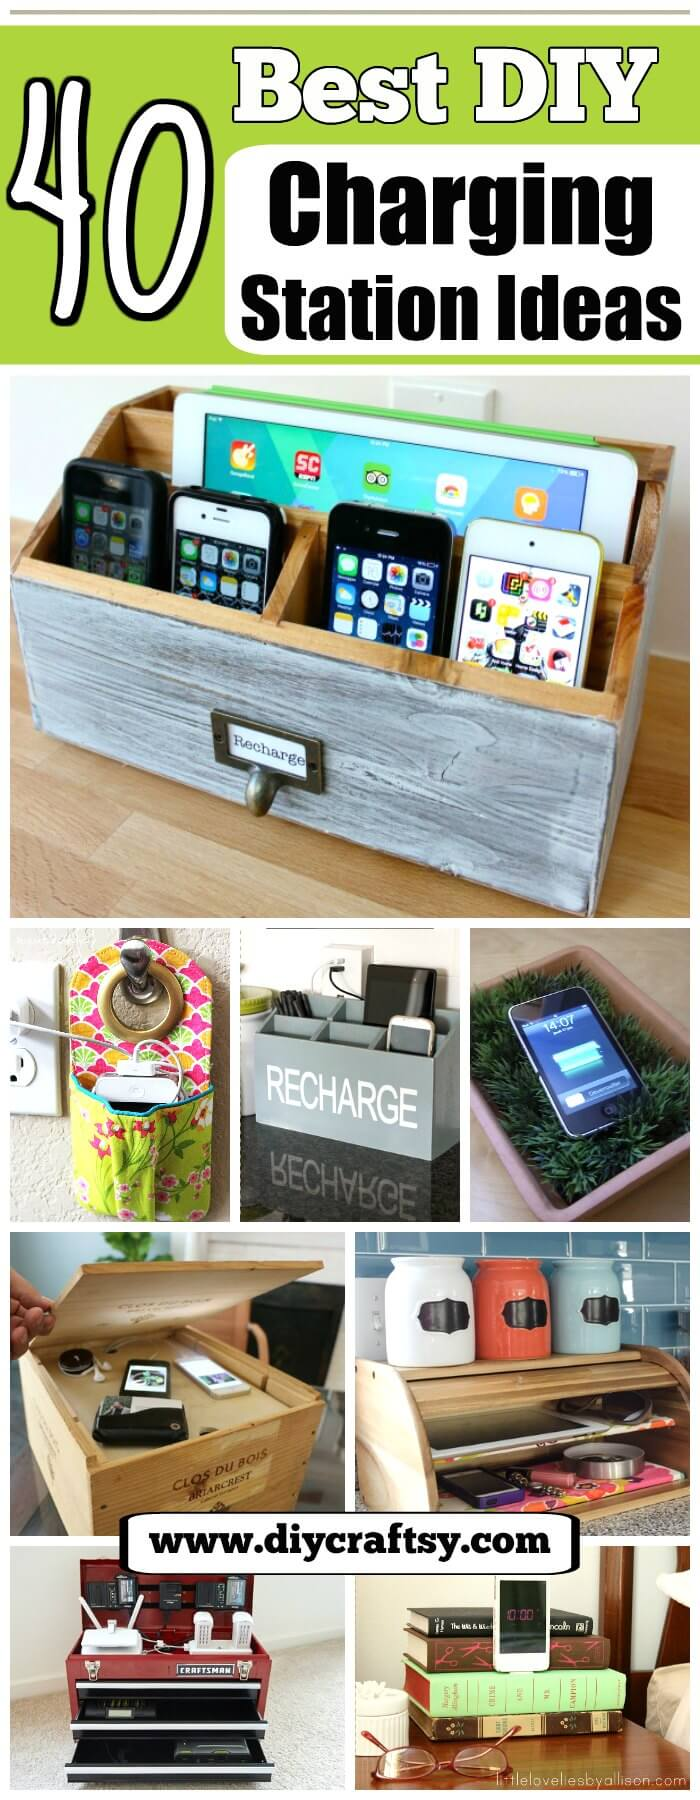 Diy Charging Station Ideas 40 Best Diy Charging Station